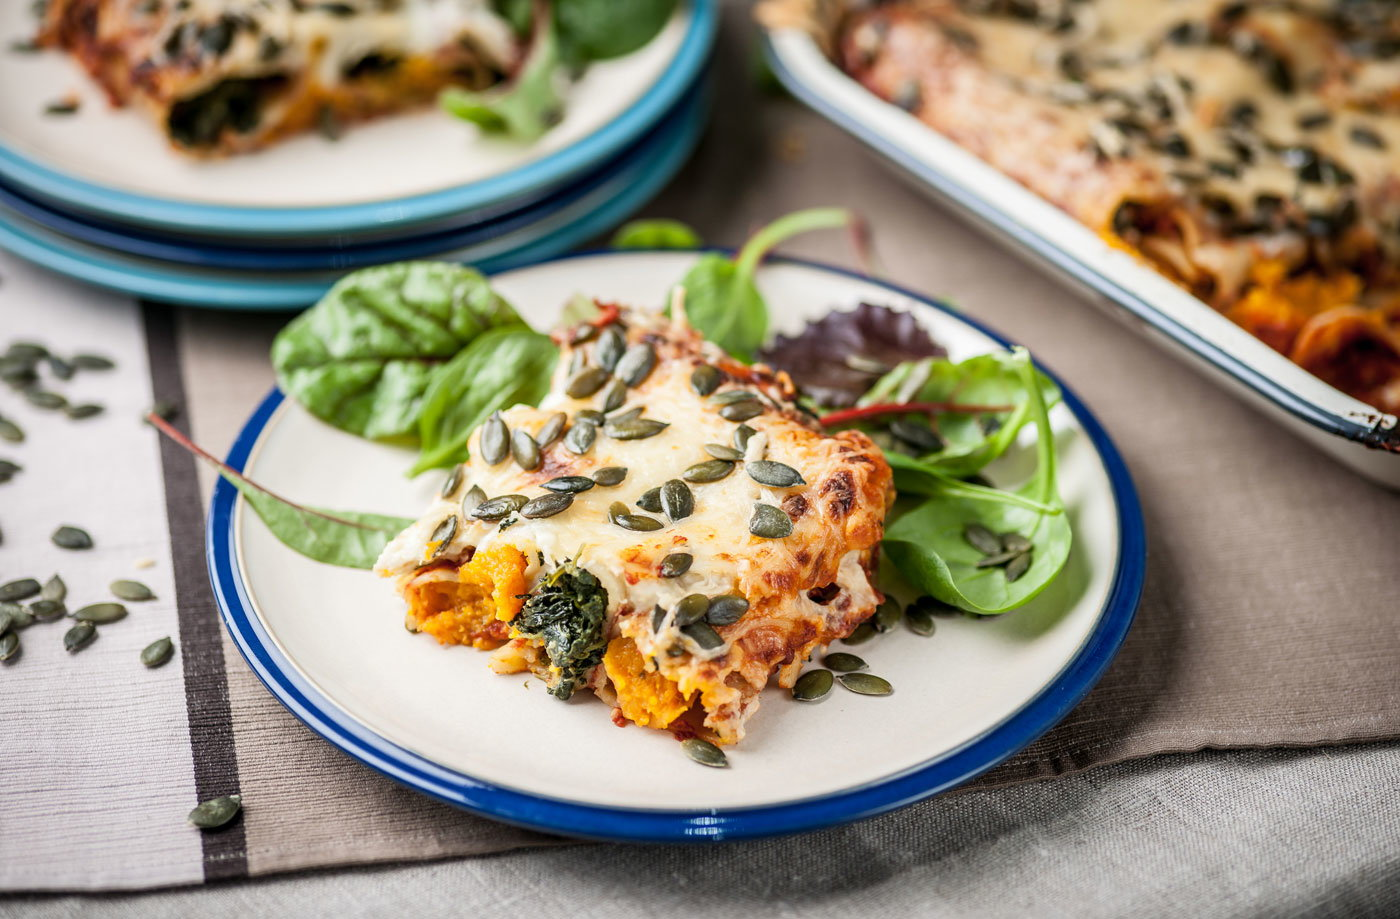 Marcus Wareing's cannelloni with spinach, pumpkin and nutmeg  recipe